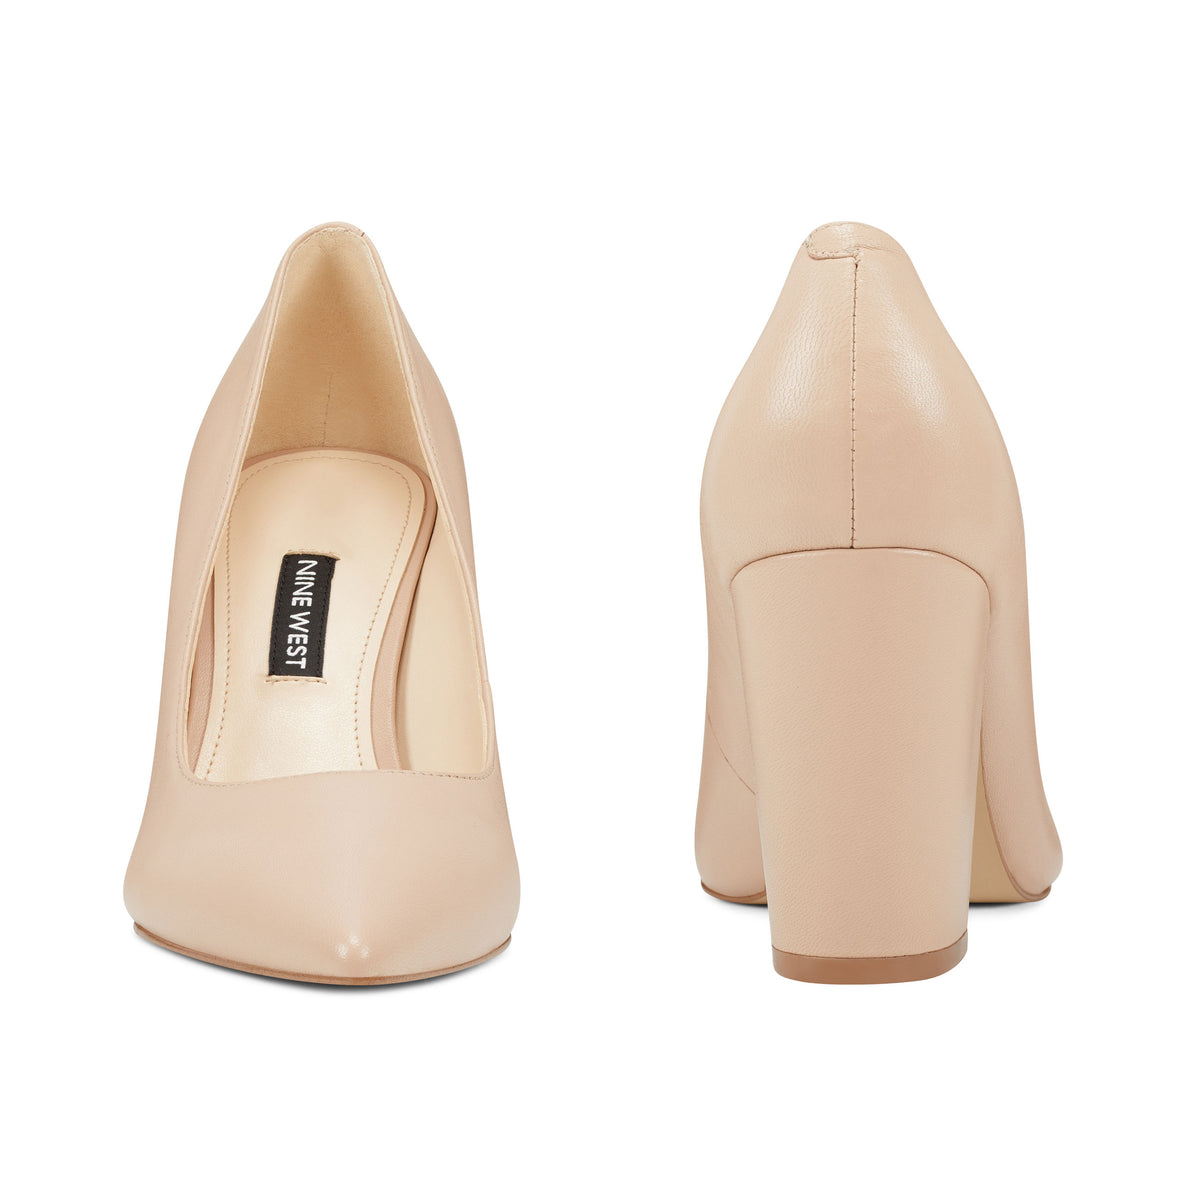 Cara Dress Pumps